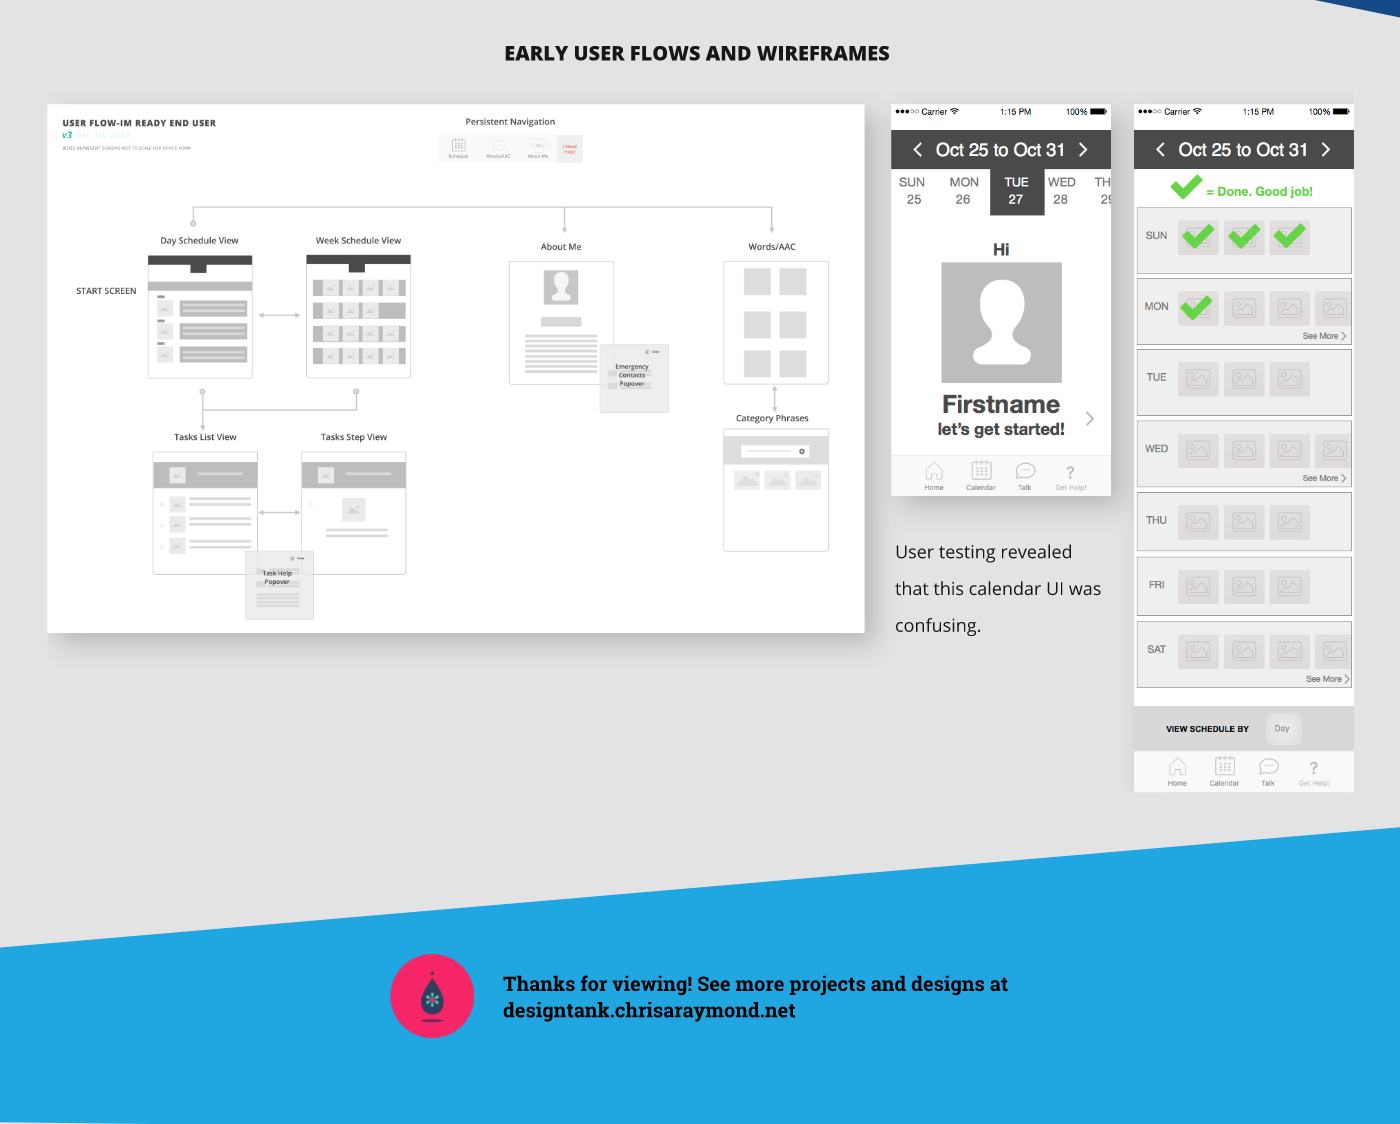 Mobile app,interface design,Interaction design ,User research,personas,wireframes,user flows